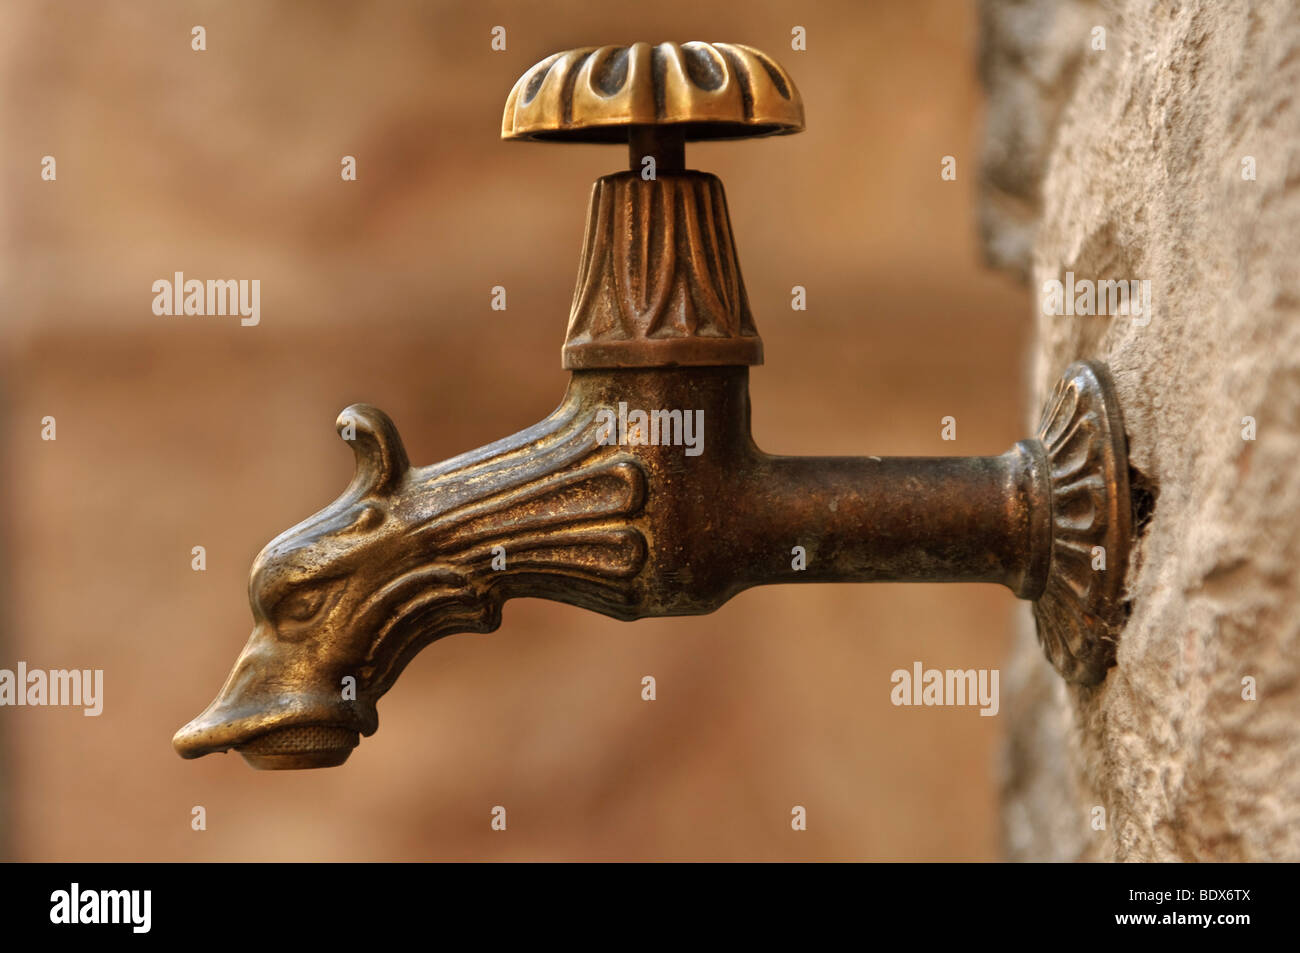 Nostalgic water-tap with a dragon's head - Stock Image